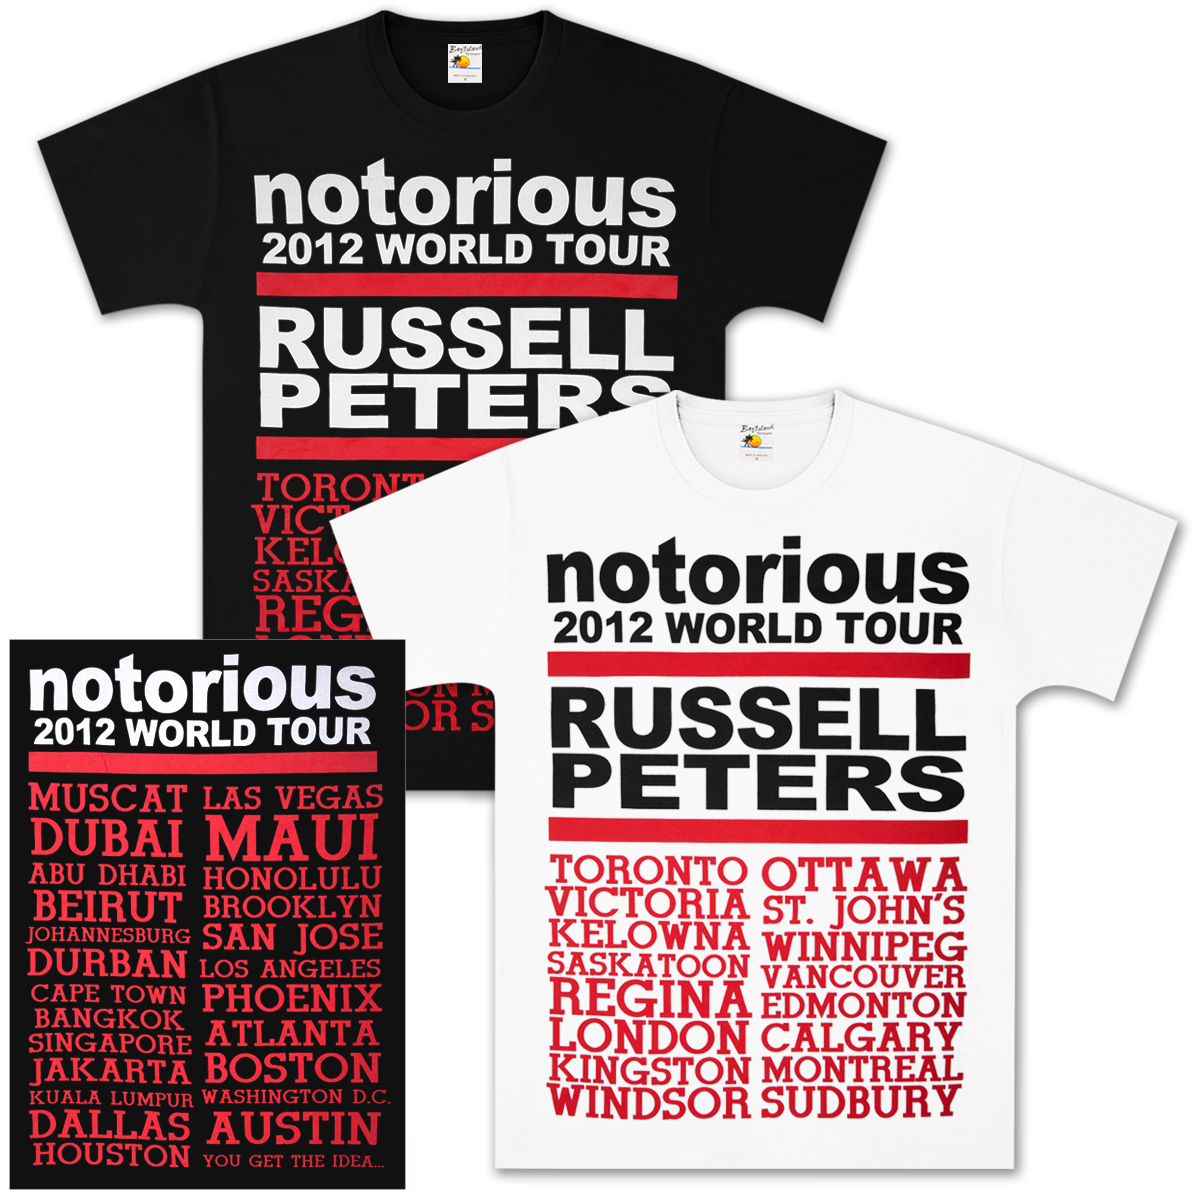 Russell Peters Notorious 2012 World Tour T-Shirt